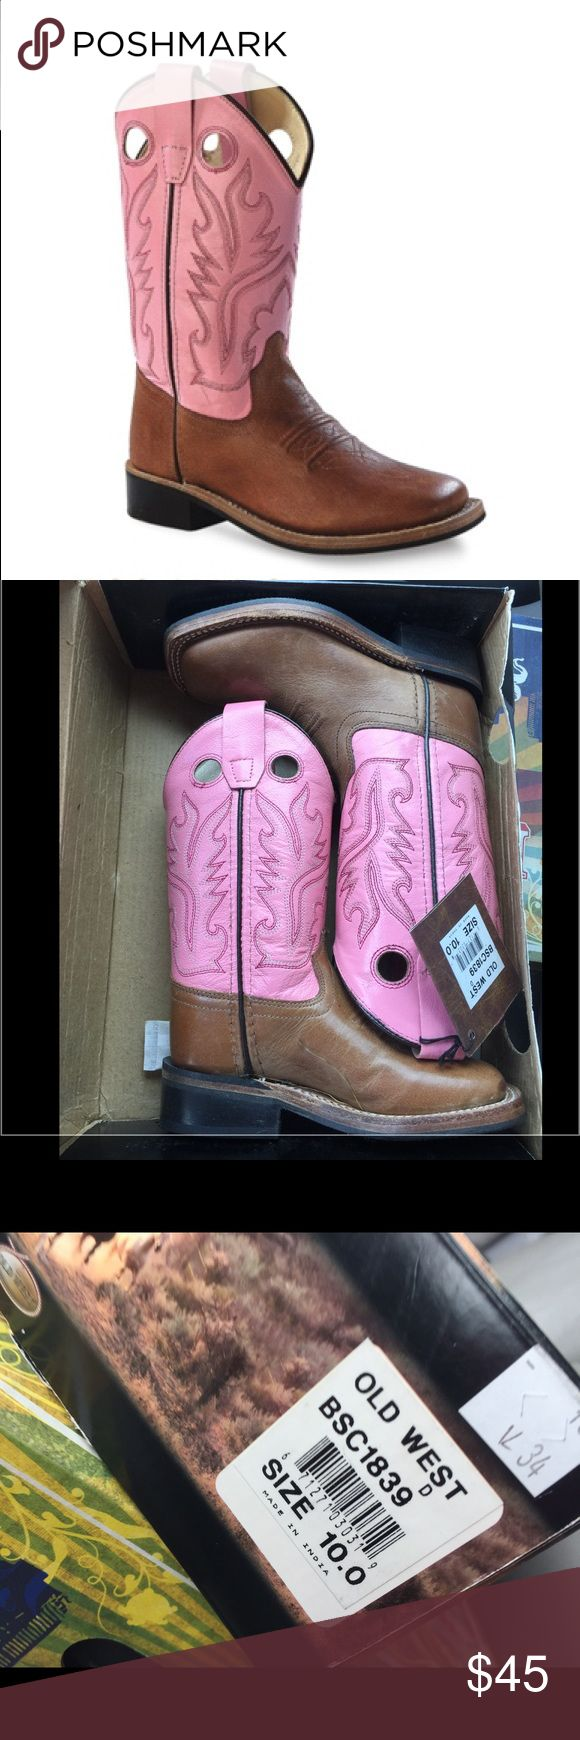 NWT OLD WEST BOOTS Little girls size 10 old west cowboy boots. New with tag, in box. Shoes Boots